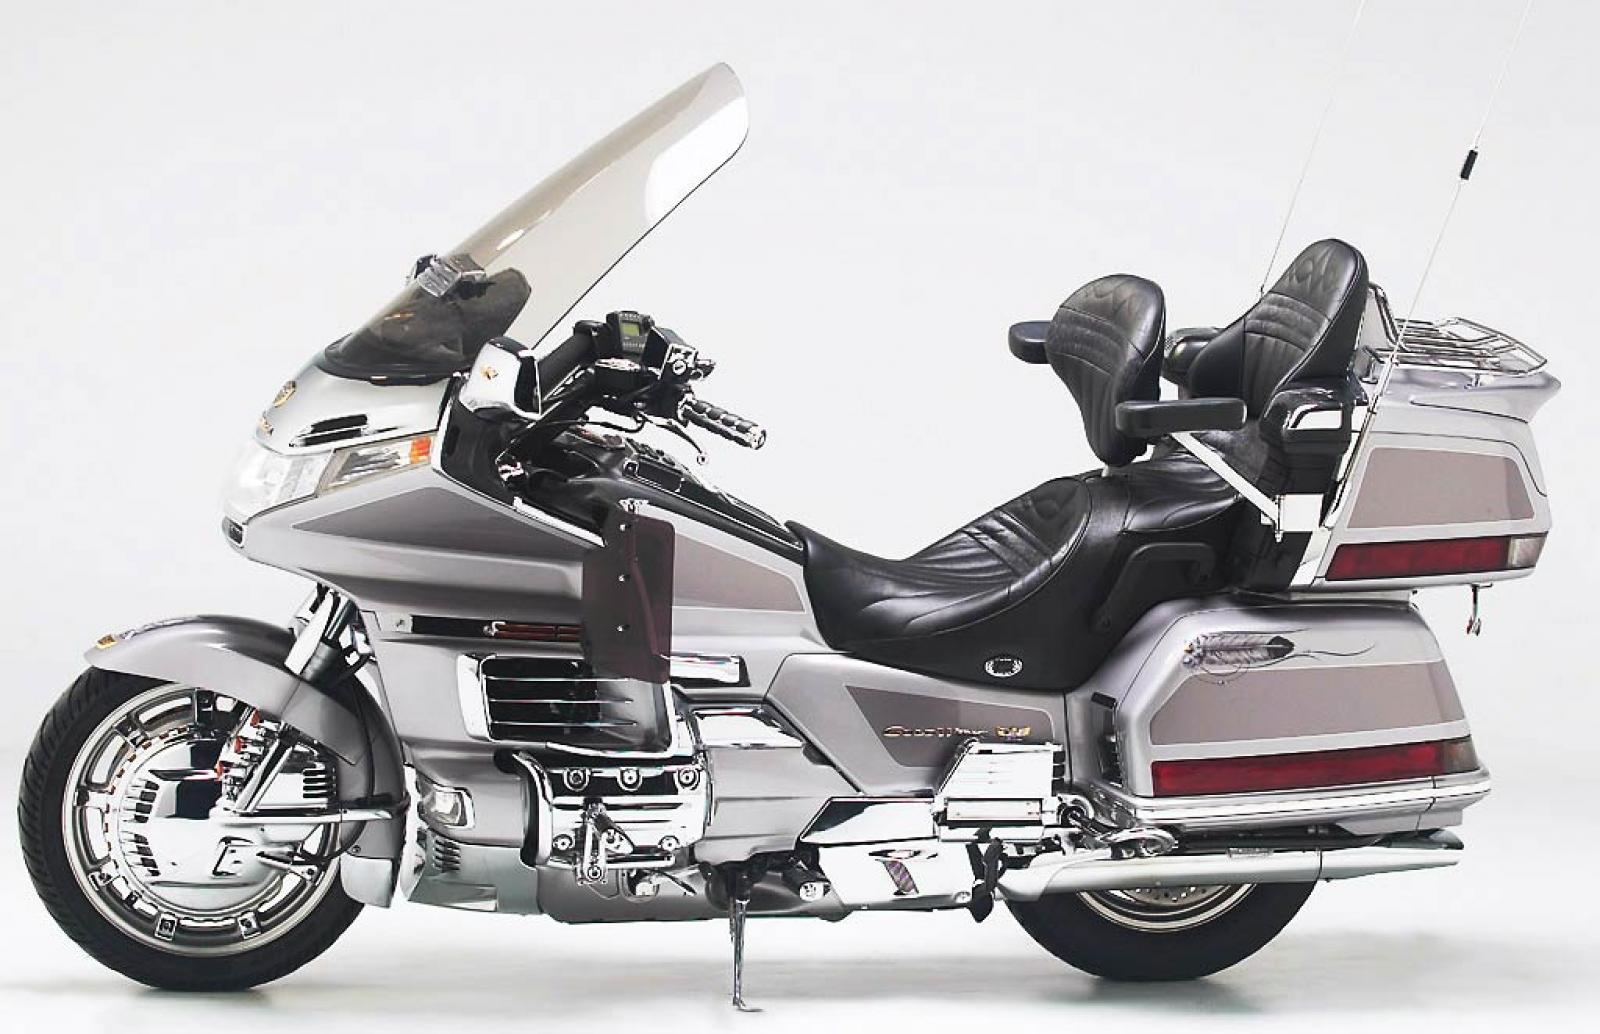 1997 honda gl1500 gold wing se moto zombdrive com. Black Bedroom Furniture Sets. Home Design Ideas